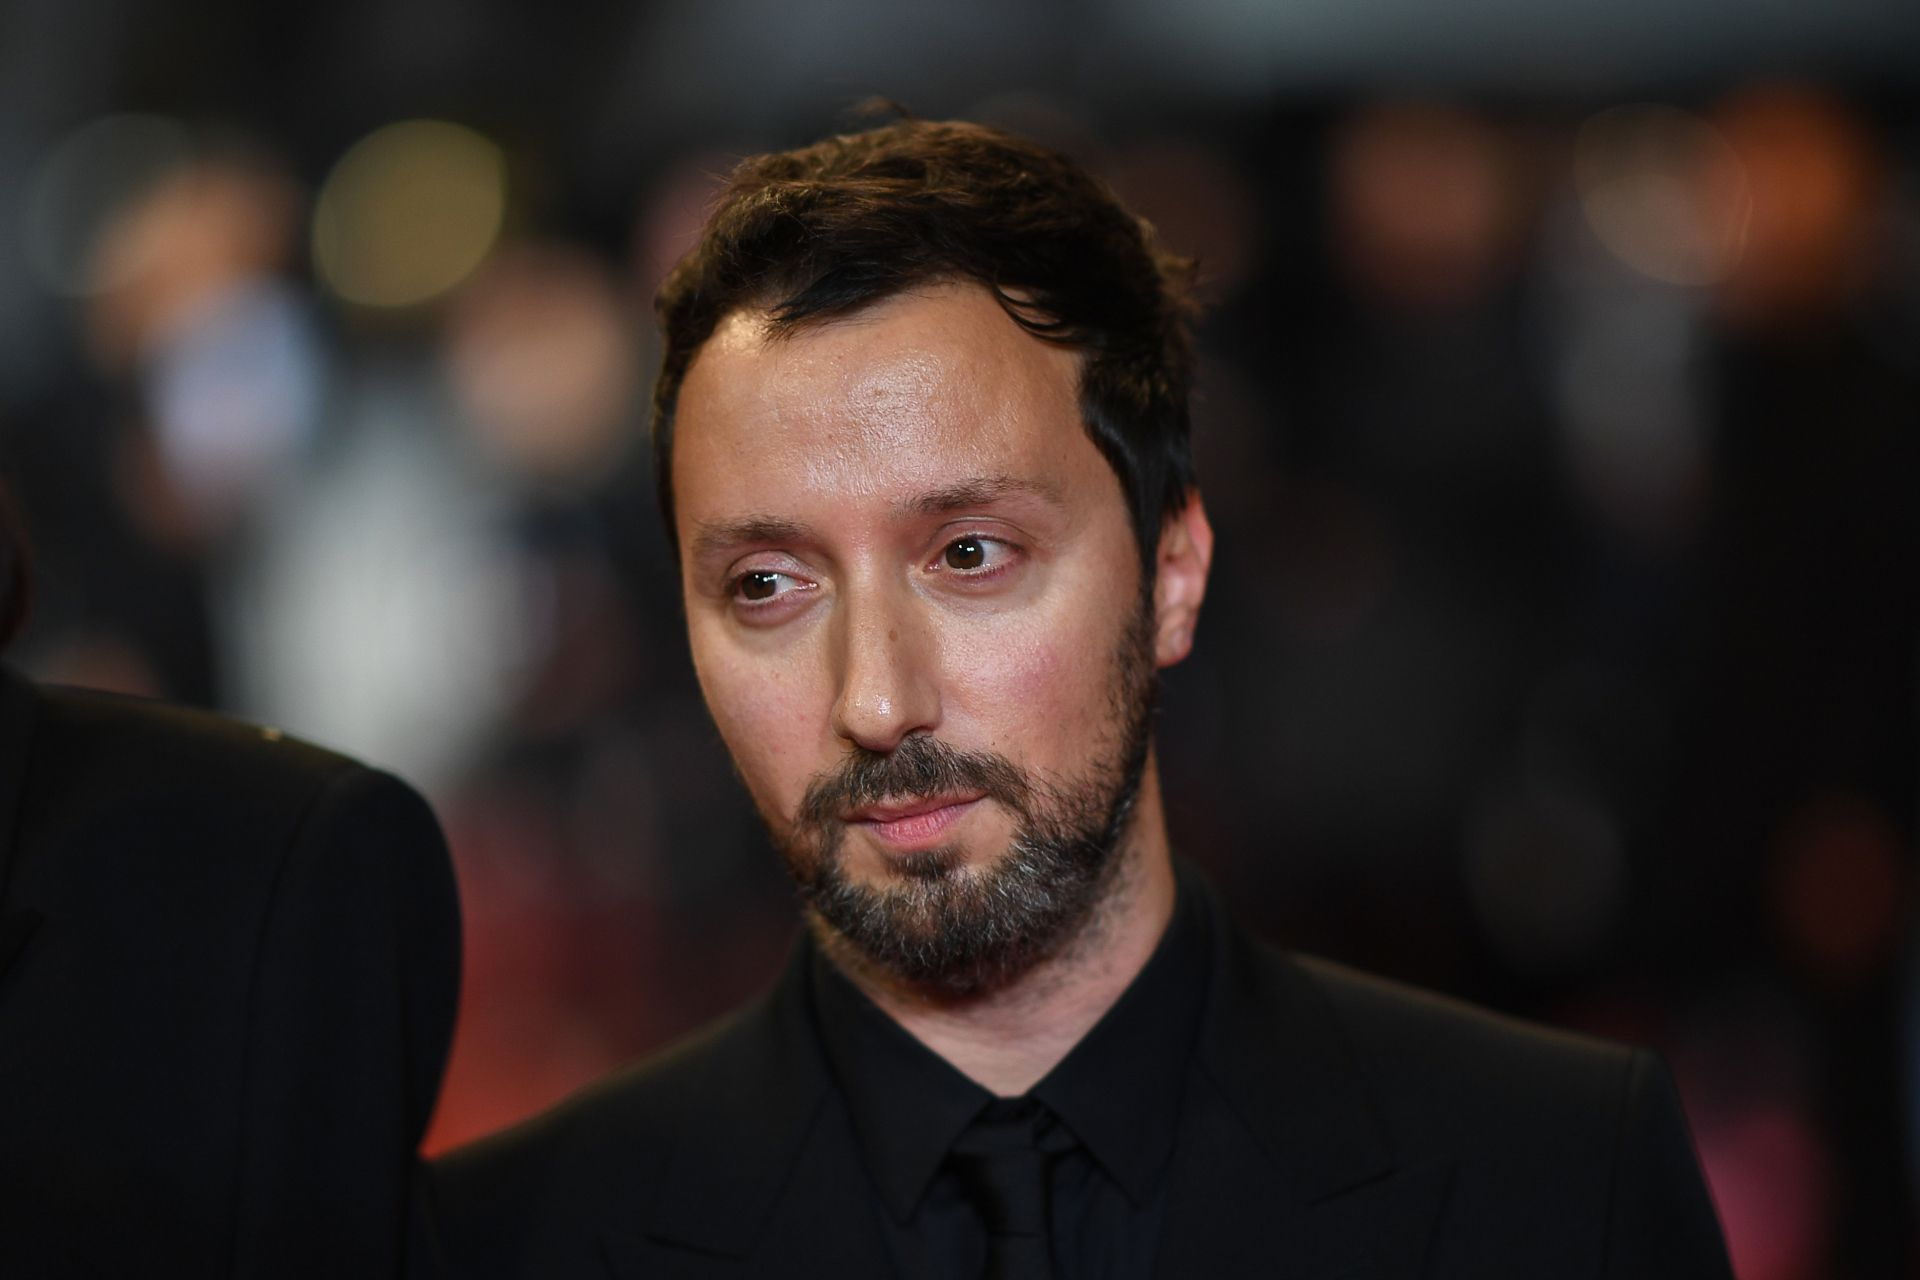 "Belgian stylist and producer Anthony Vaccarello arrives for the screening of the film ""Lux Aeterna"" at the 72nd edition of the Cannes Film Festival in Cannes, southern France, on May 18, 2019. (Photo by LOIC VENANCE / AFP)"